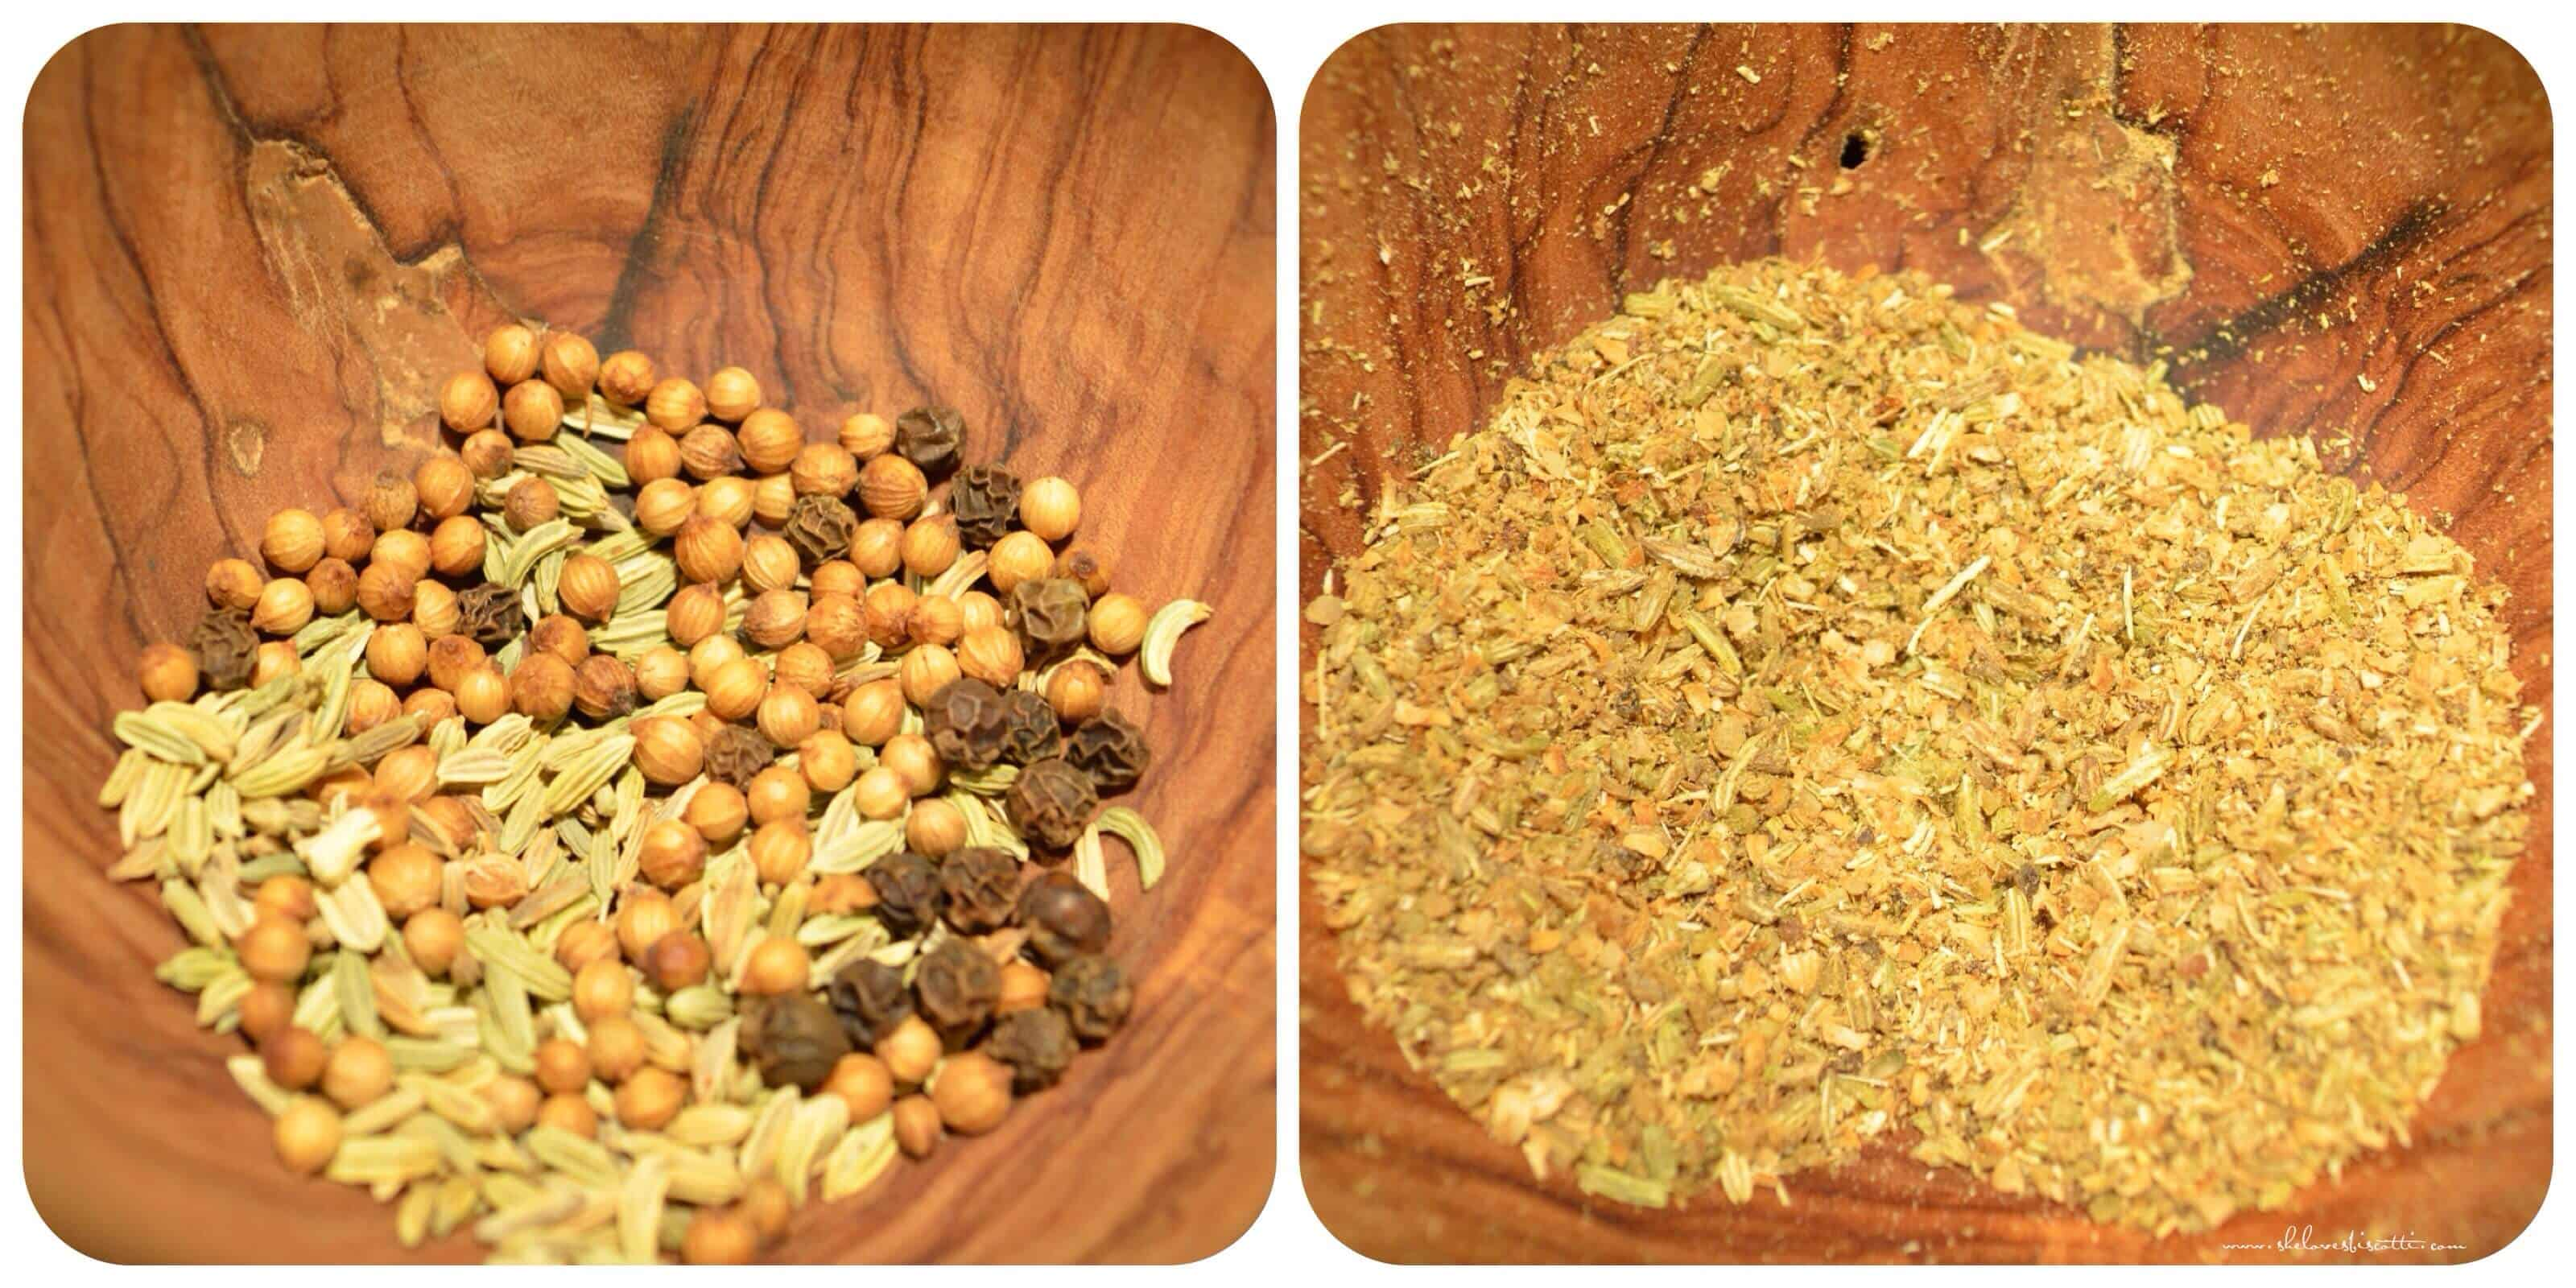 The before and after picture of whole and ground up fennel seeds, coriander and peppercorns.